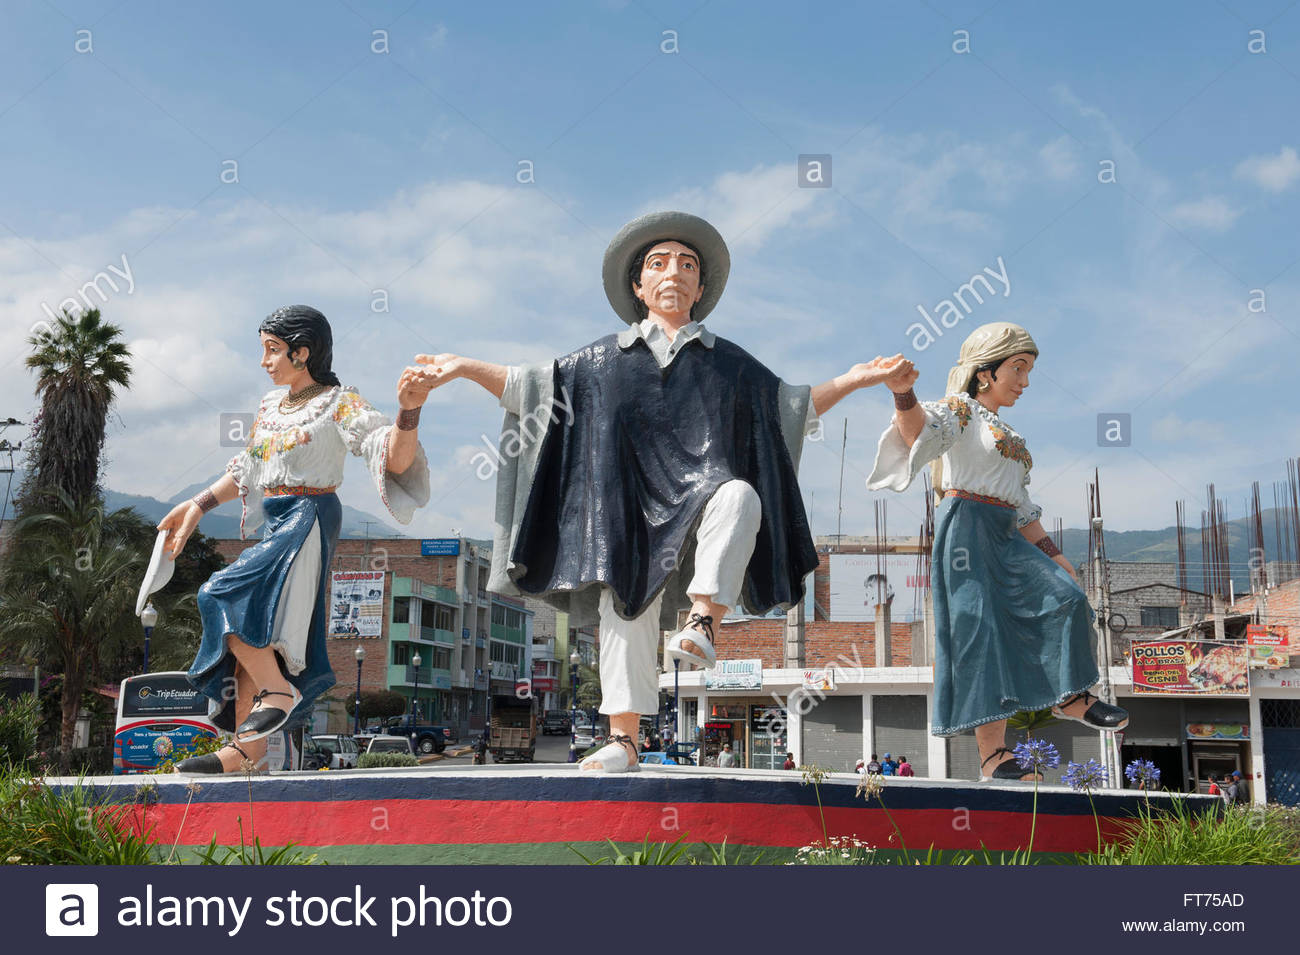 Otavalo Ecuador On a roundabout a statue of three indigenous people dancing and wearing typical clothing. - Stock Image